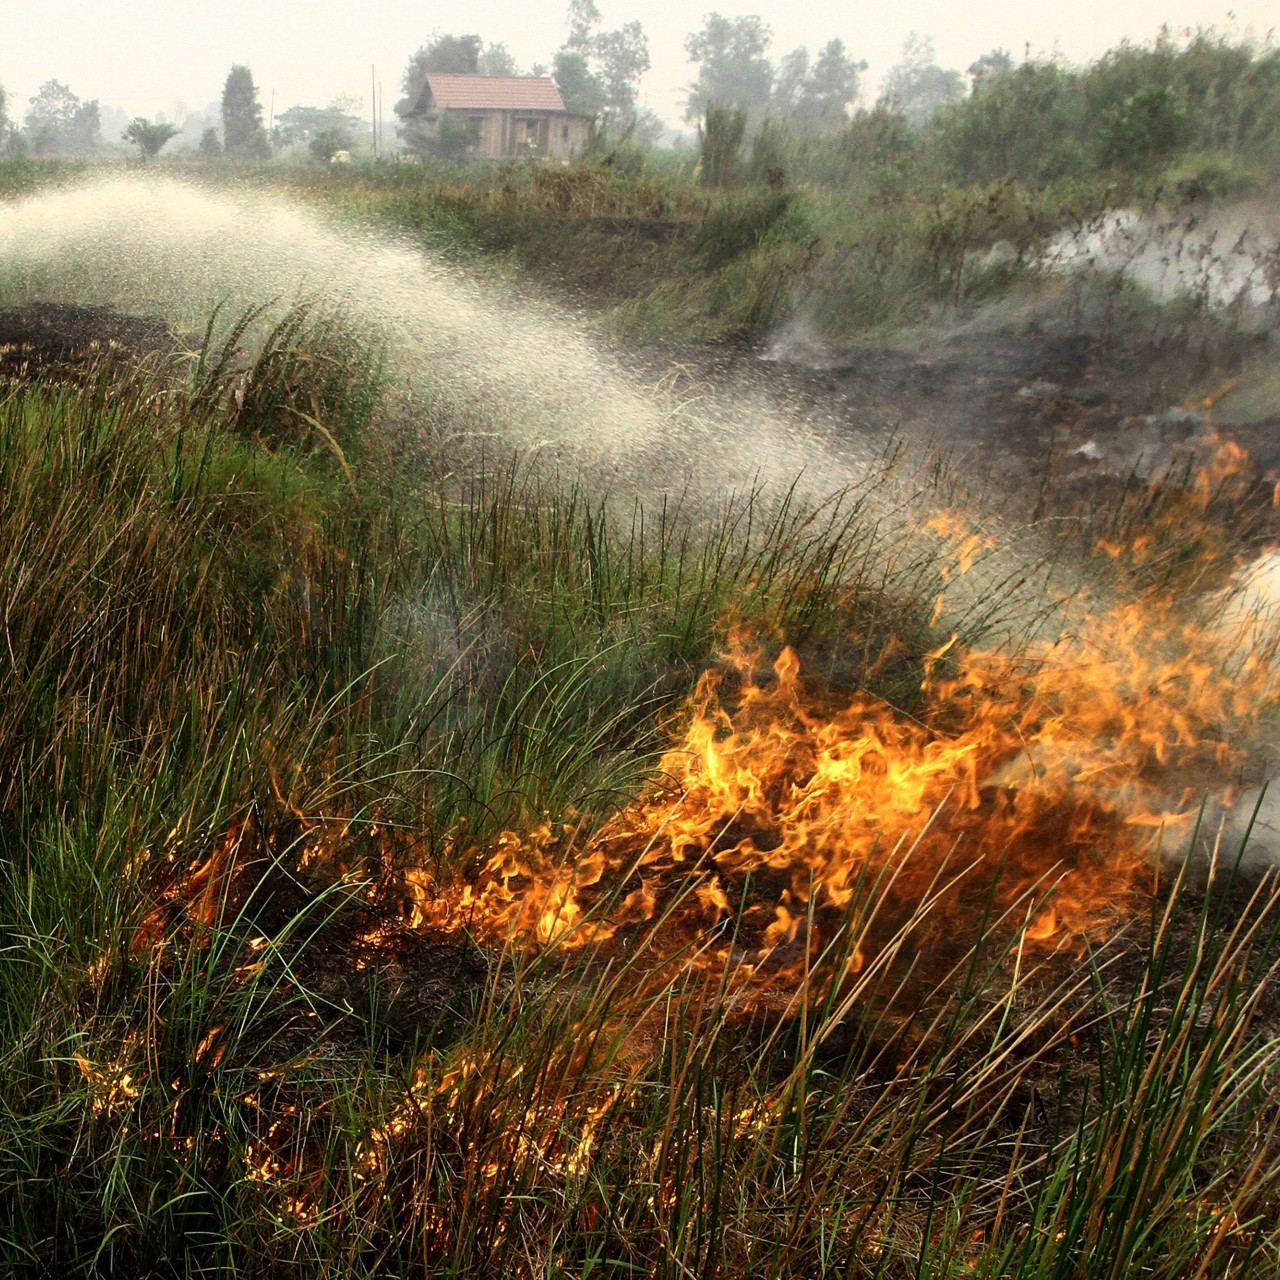 Indonesia accepts international help to combat fires that have sent